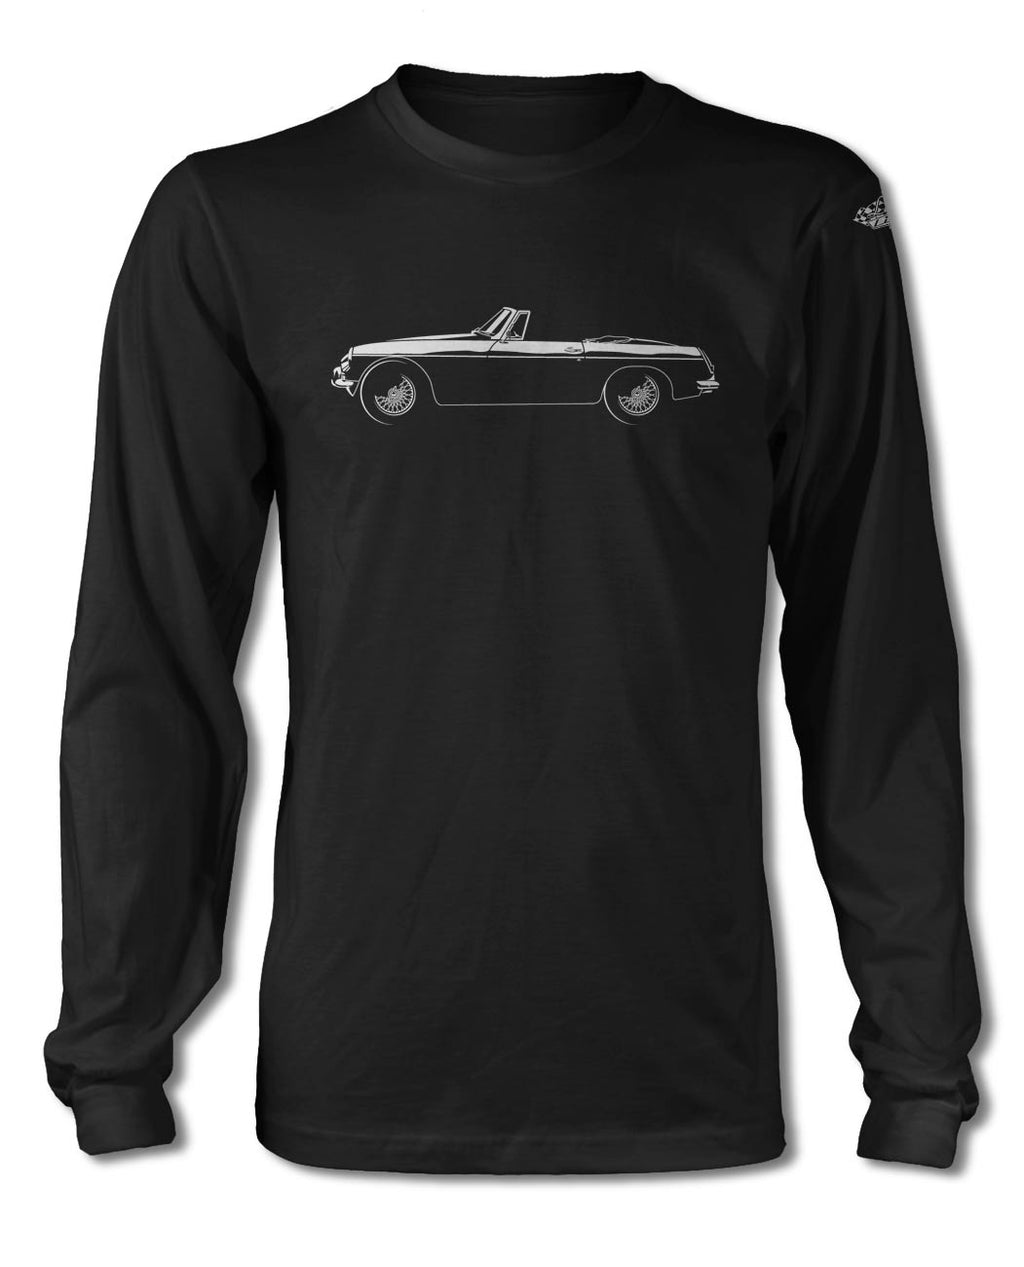 MG MGB Convertible T-Shirt - Long Sleeves - Side View